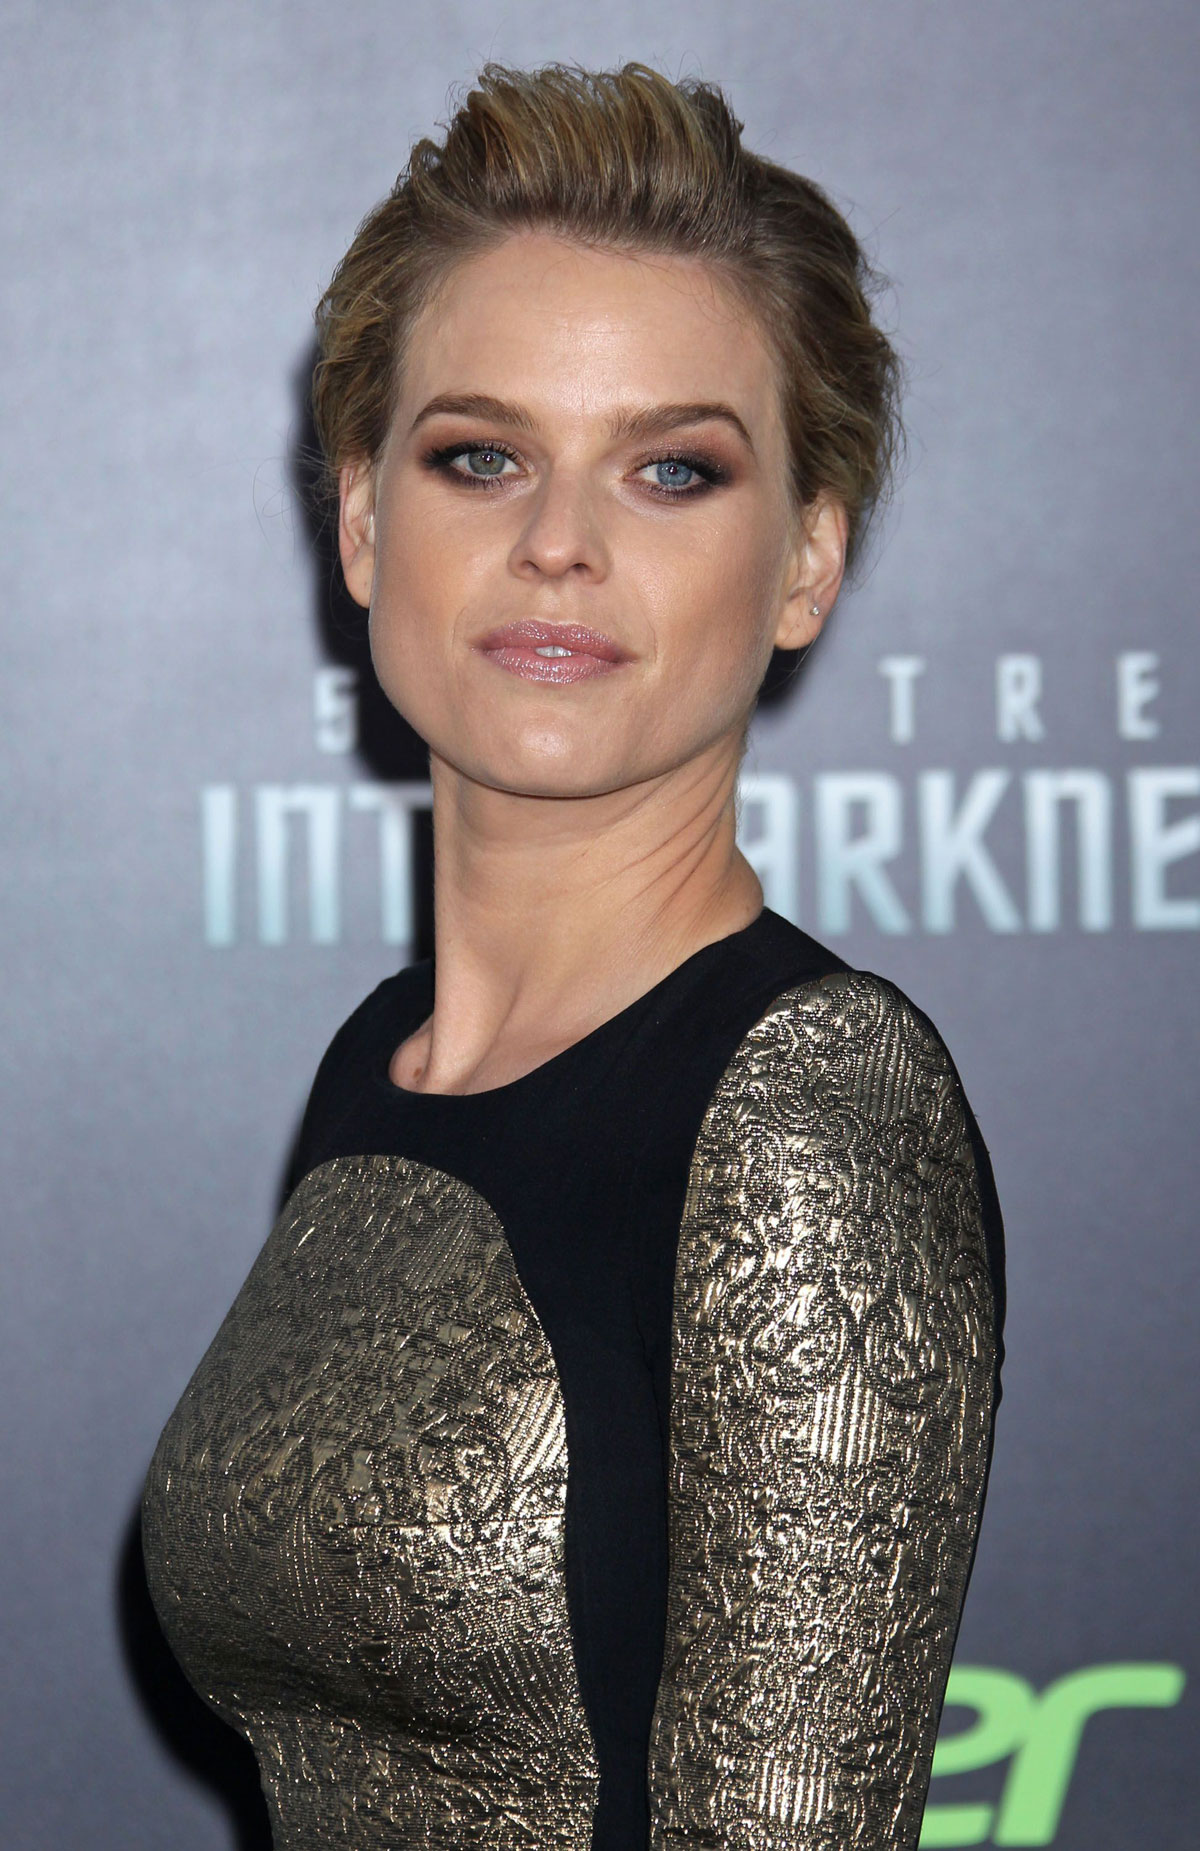 Star Trek Into Darkness Alice Eve premiere